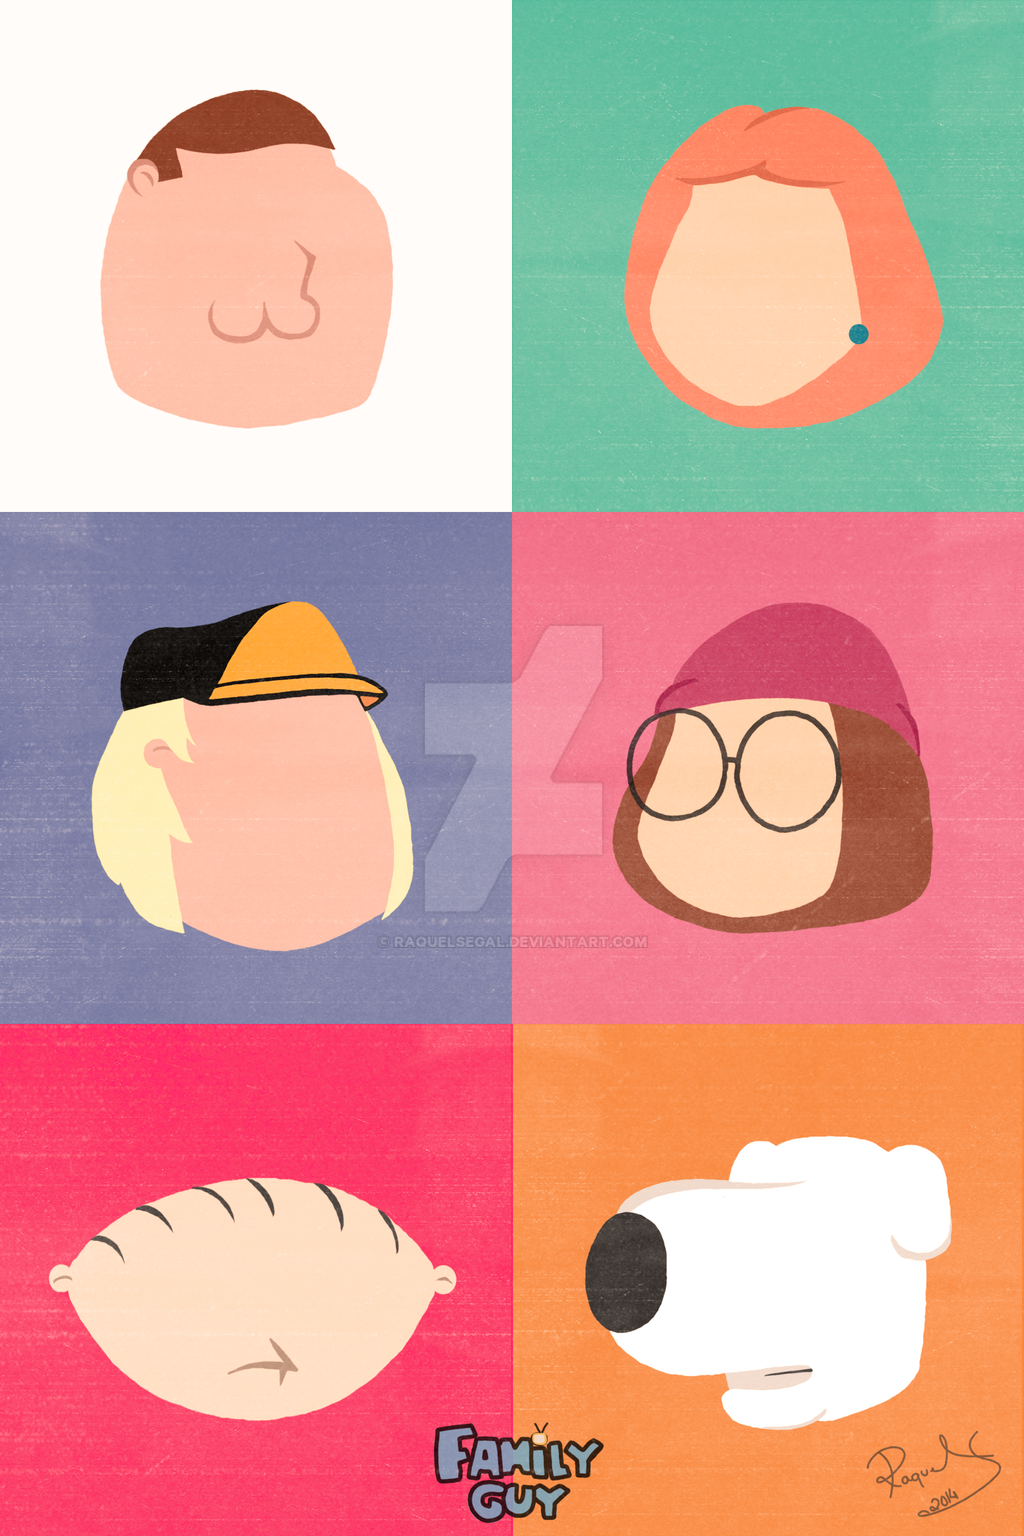 Family guy minimalist by raquelsegal on deviantart for Minimal art family